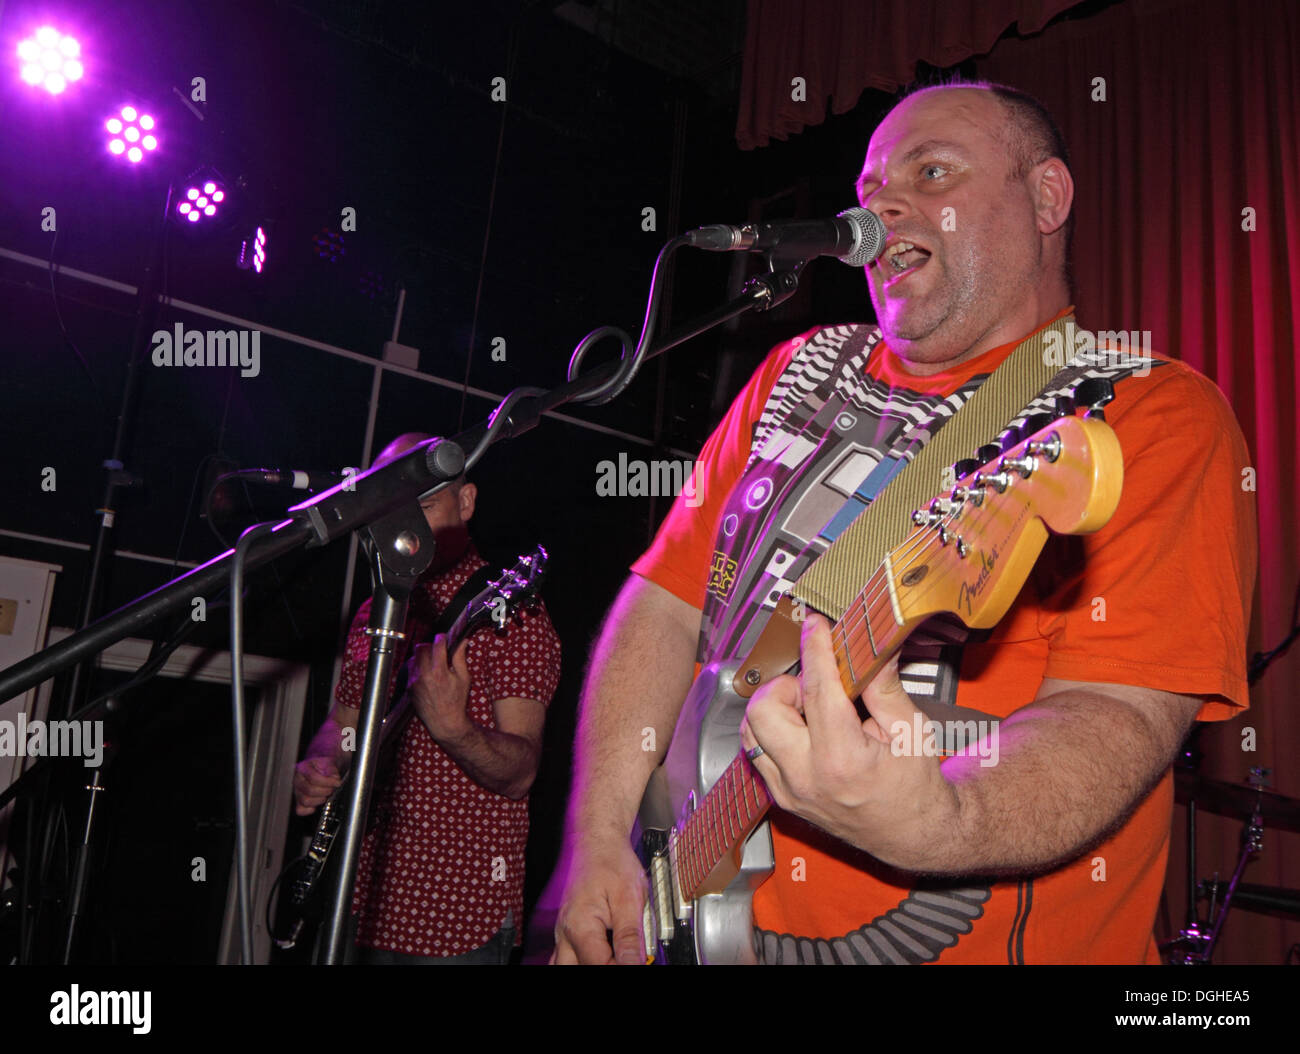 Winnington,Rec,Cheshire,England,UK,orange,shirt,guitar,guitarist,playing,live,on,stage,signed,unsigned,un-signed,amateur,unsigned,John,Collins,gotonysmith,Buy Pictures of,Buy Images Of